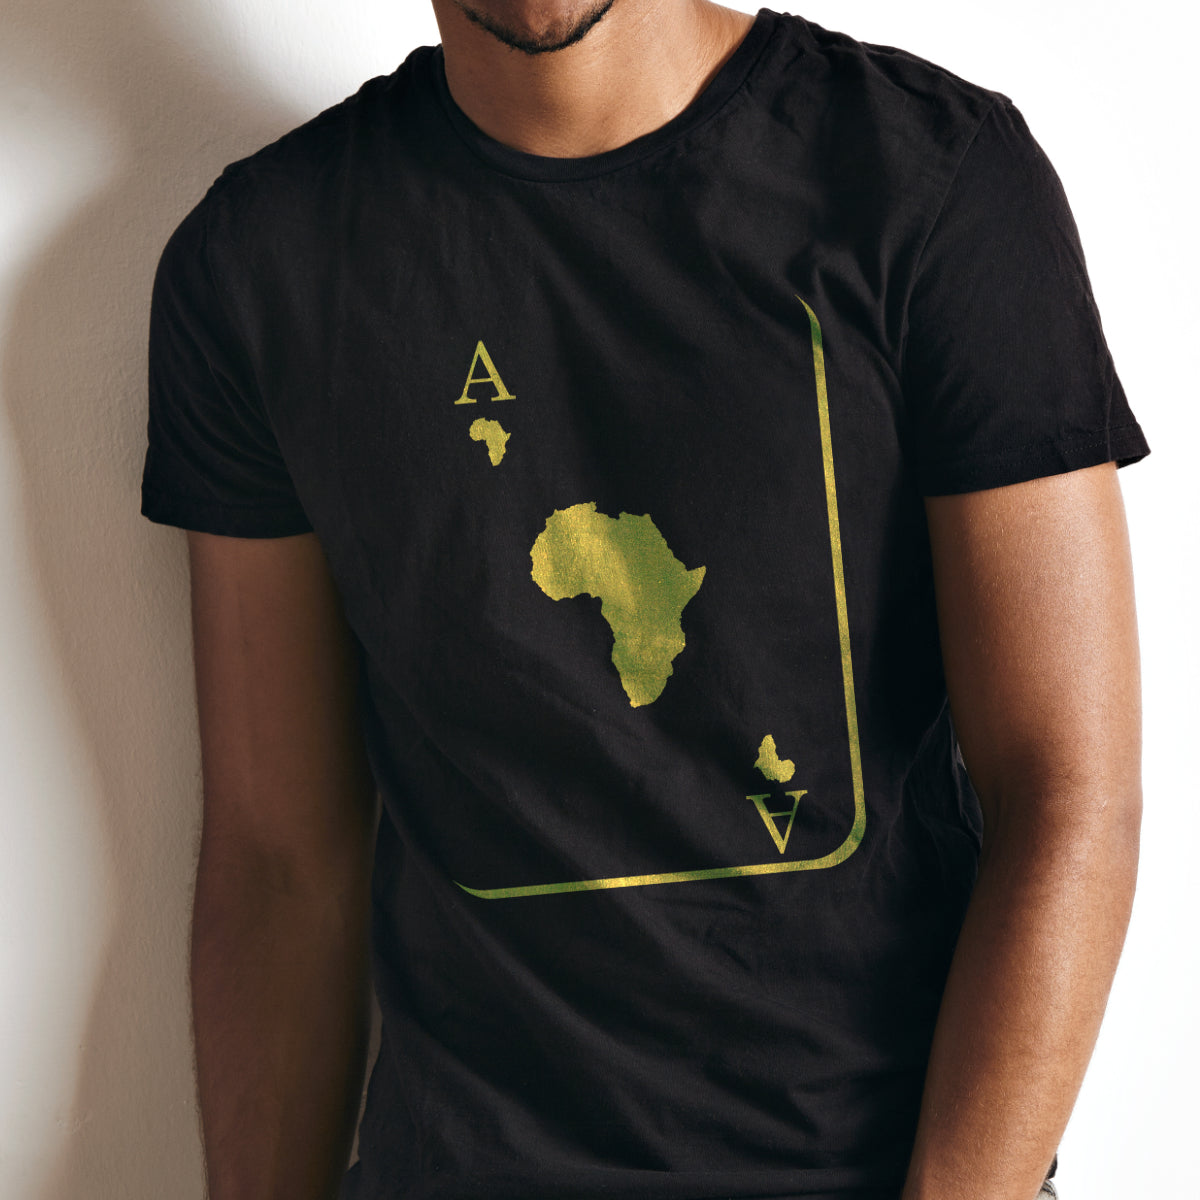 The Ace Alpha, Black and Old Gold Tee